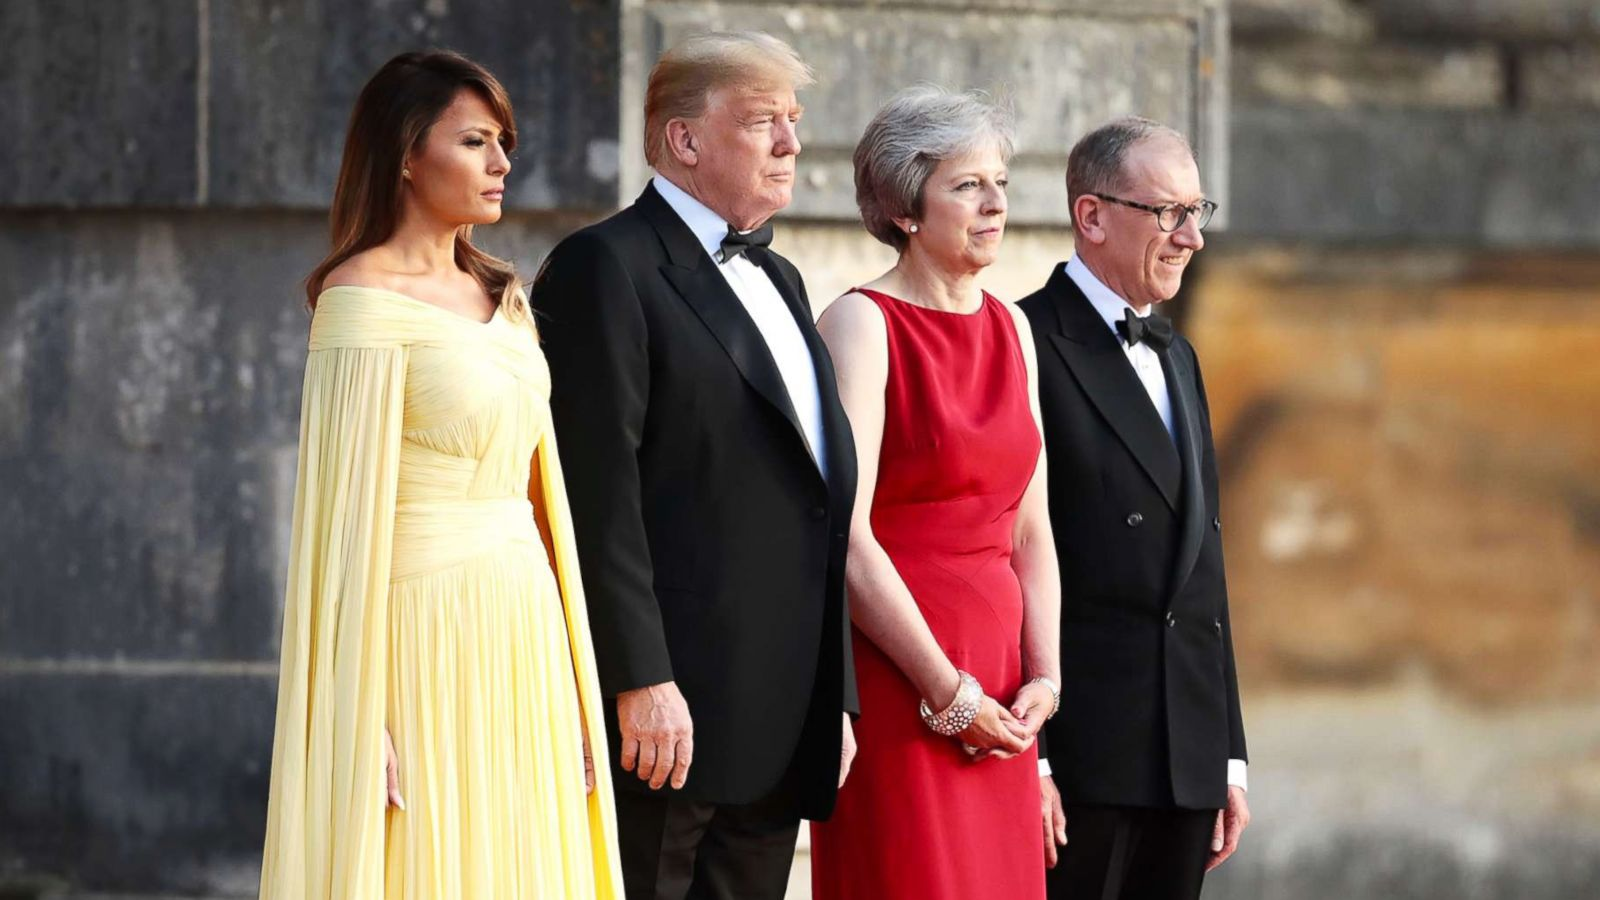 British Pageantry On Display As President Trump And First Lady